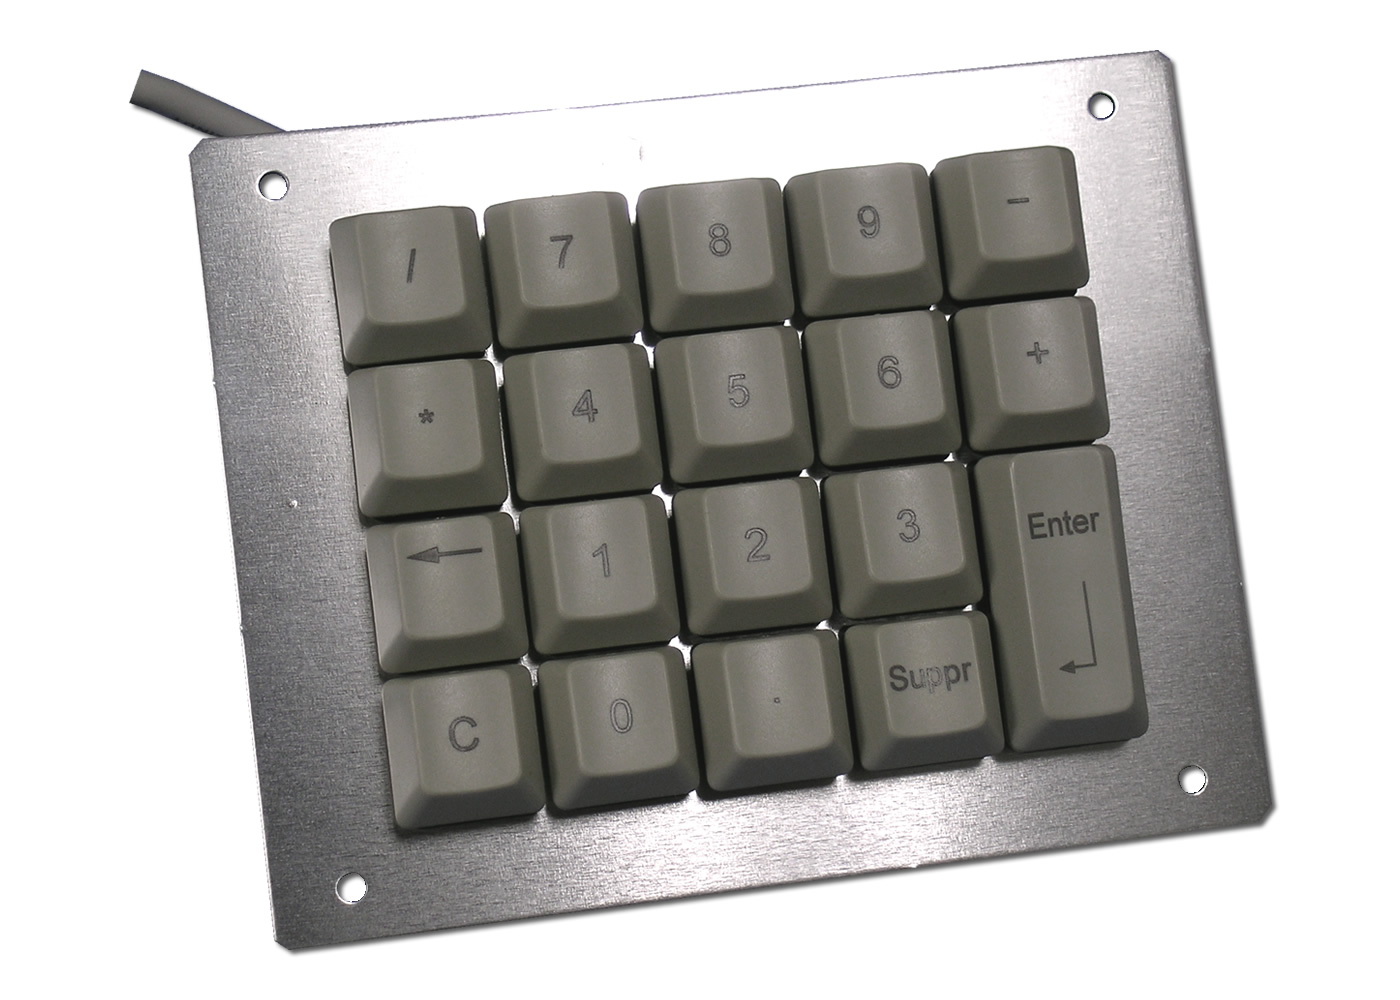 Clavier industriel 20 touches OEM